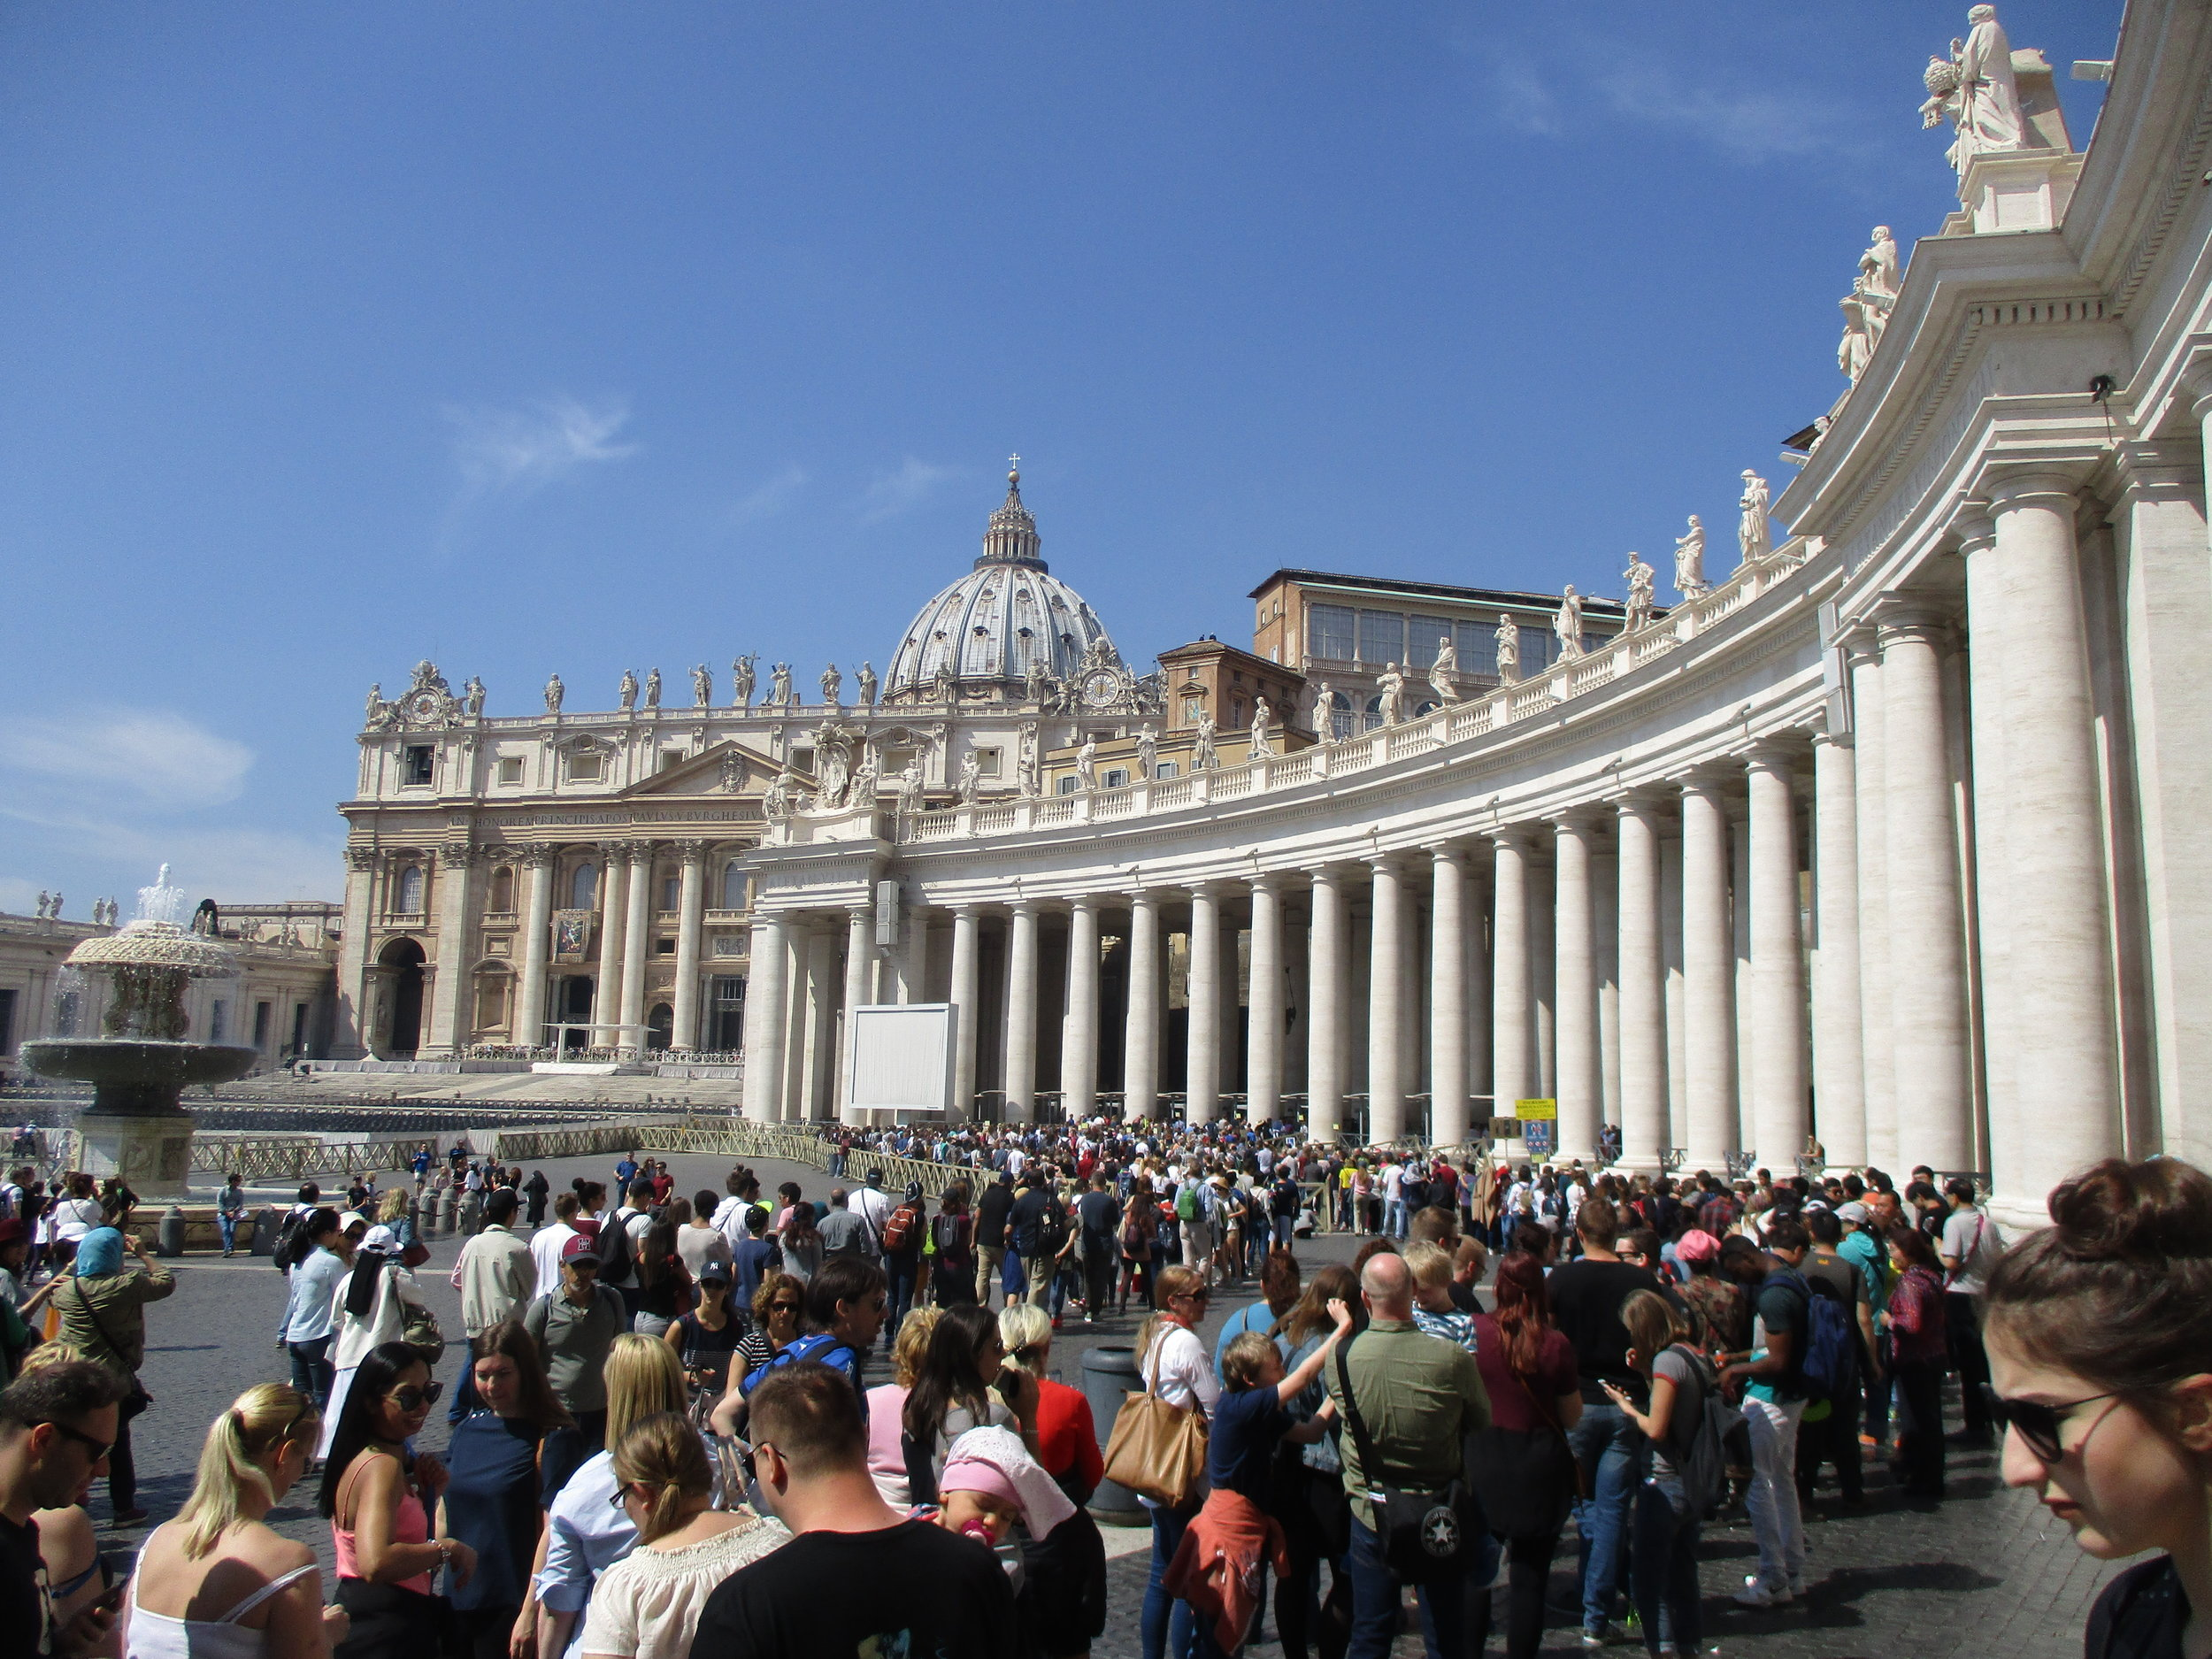 St. Peter's square at the Vatican. That's about 1/4 of the queue to get into the Sistine chapel